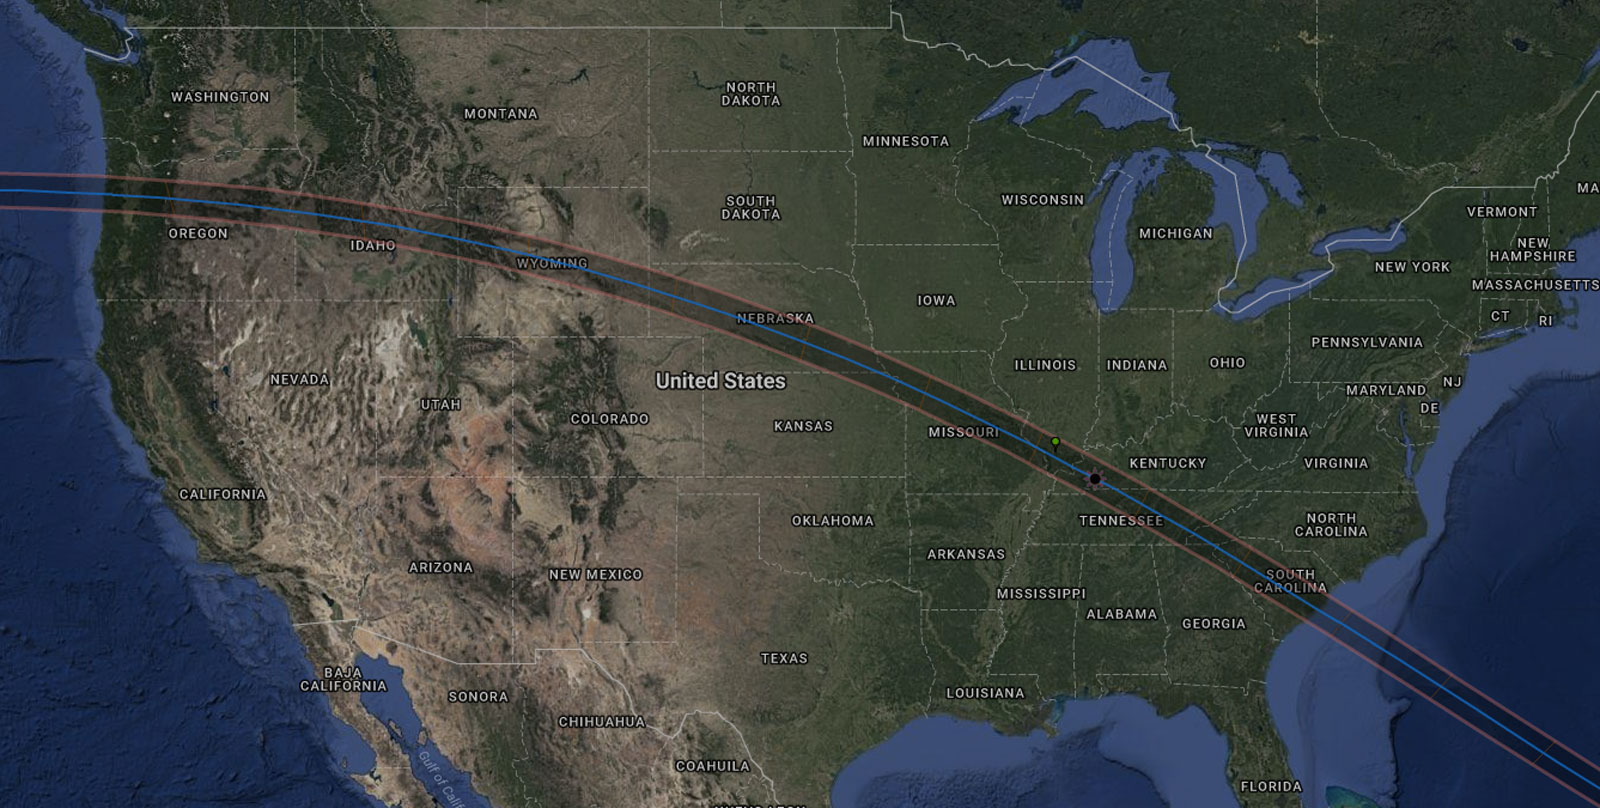 The path of the total solar eclipse on Aug. 21, 2017.